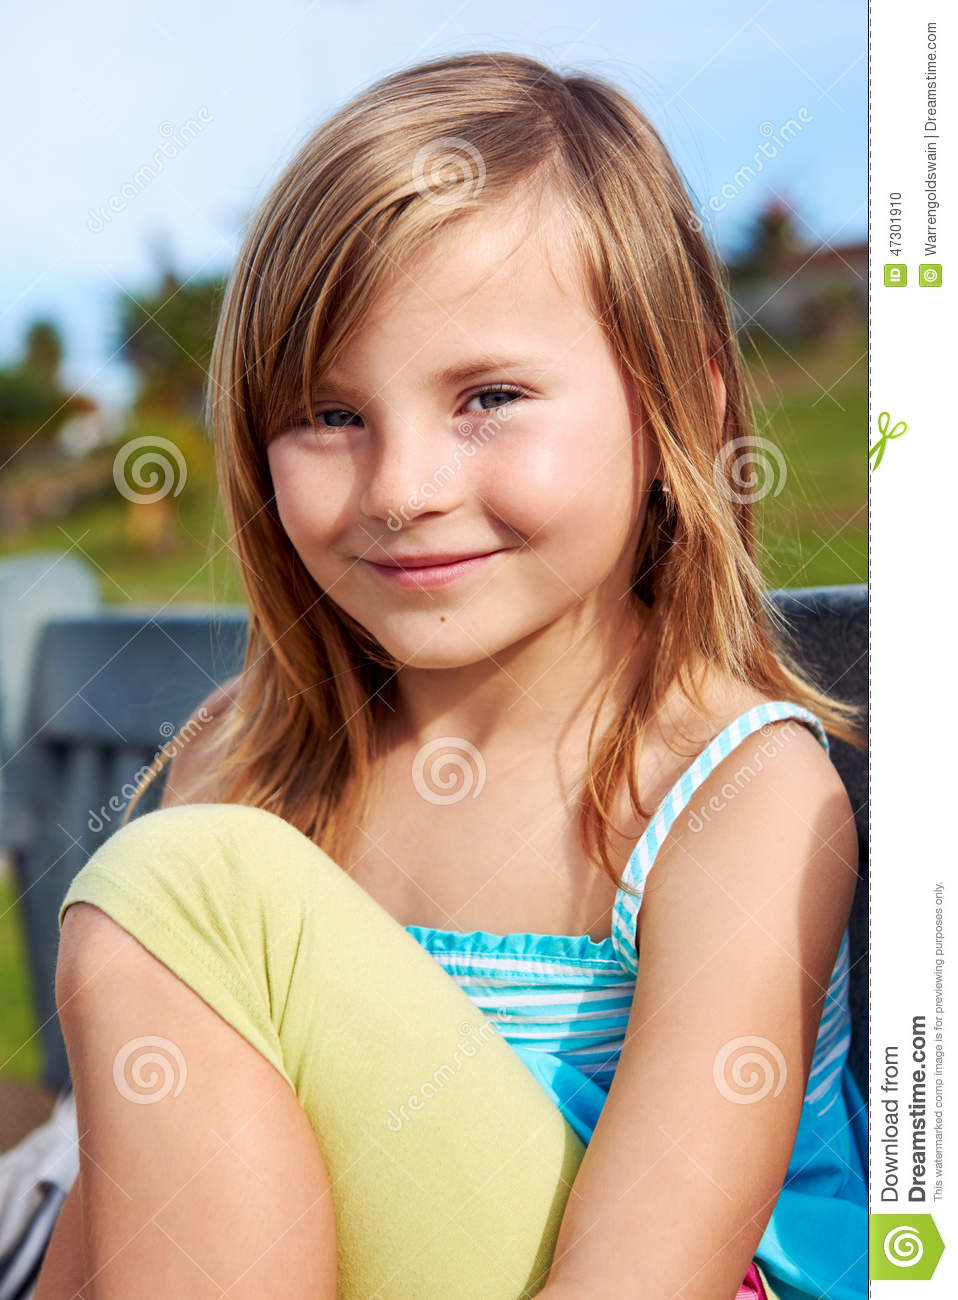 Girl child smile stock photo image 47301910 Cute teenage girls pics